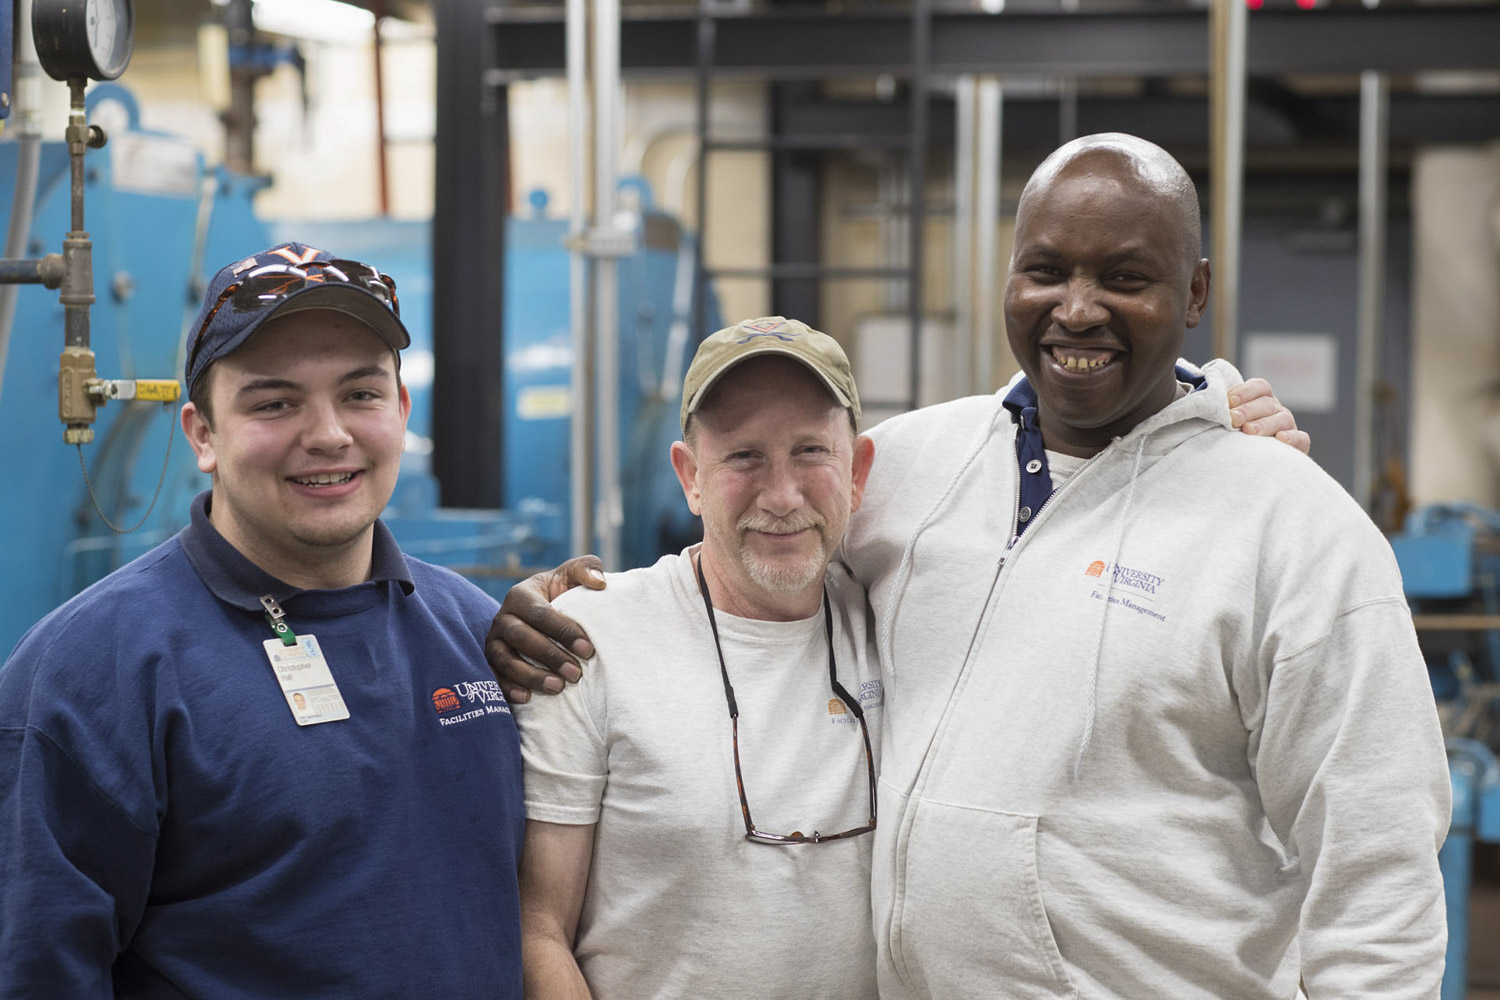 Chege, right, with fellow apprentice Christopher Hall, left, and HVAC mechanic Bill Kardos. Co-workers describe Chege as endlessly curious and eager to learn.